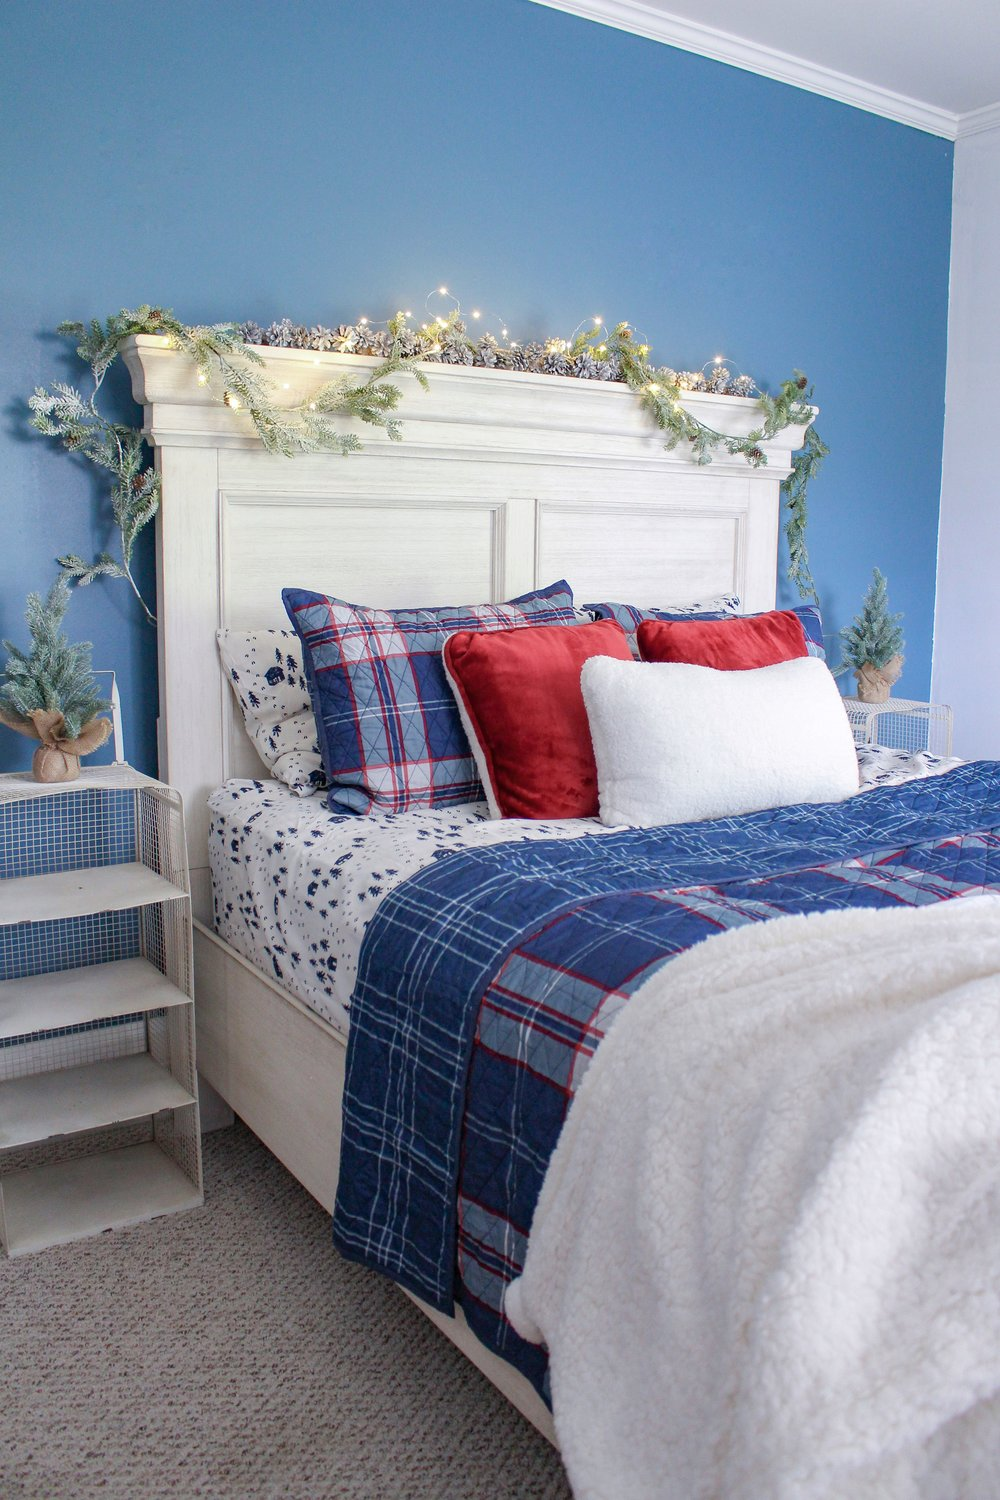 Cozy holiday guest room